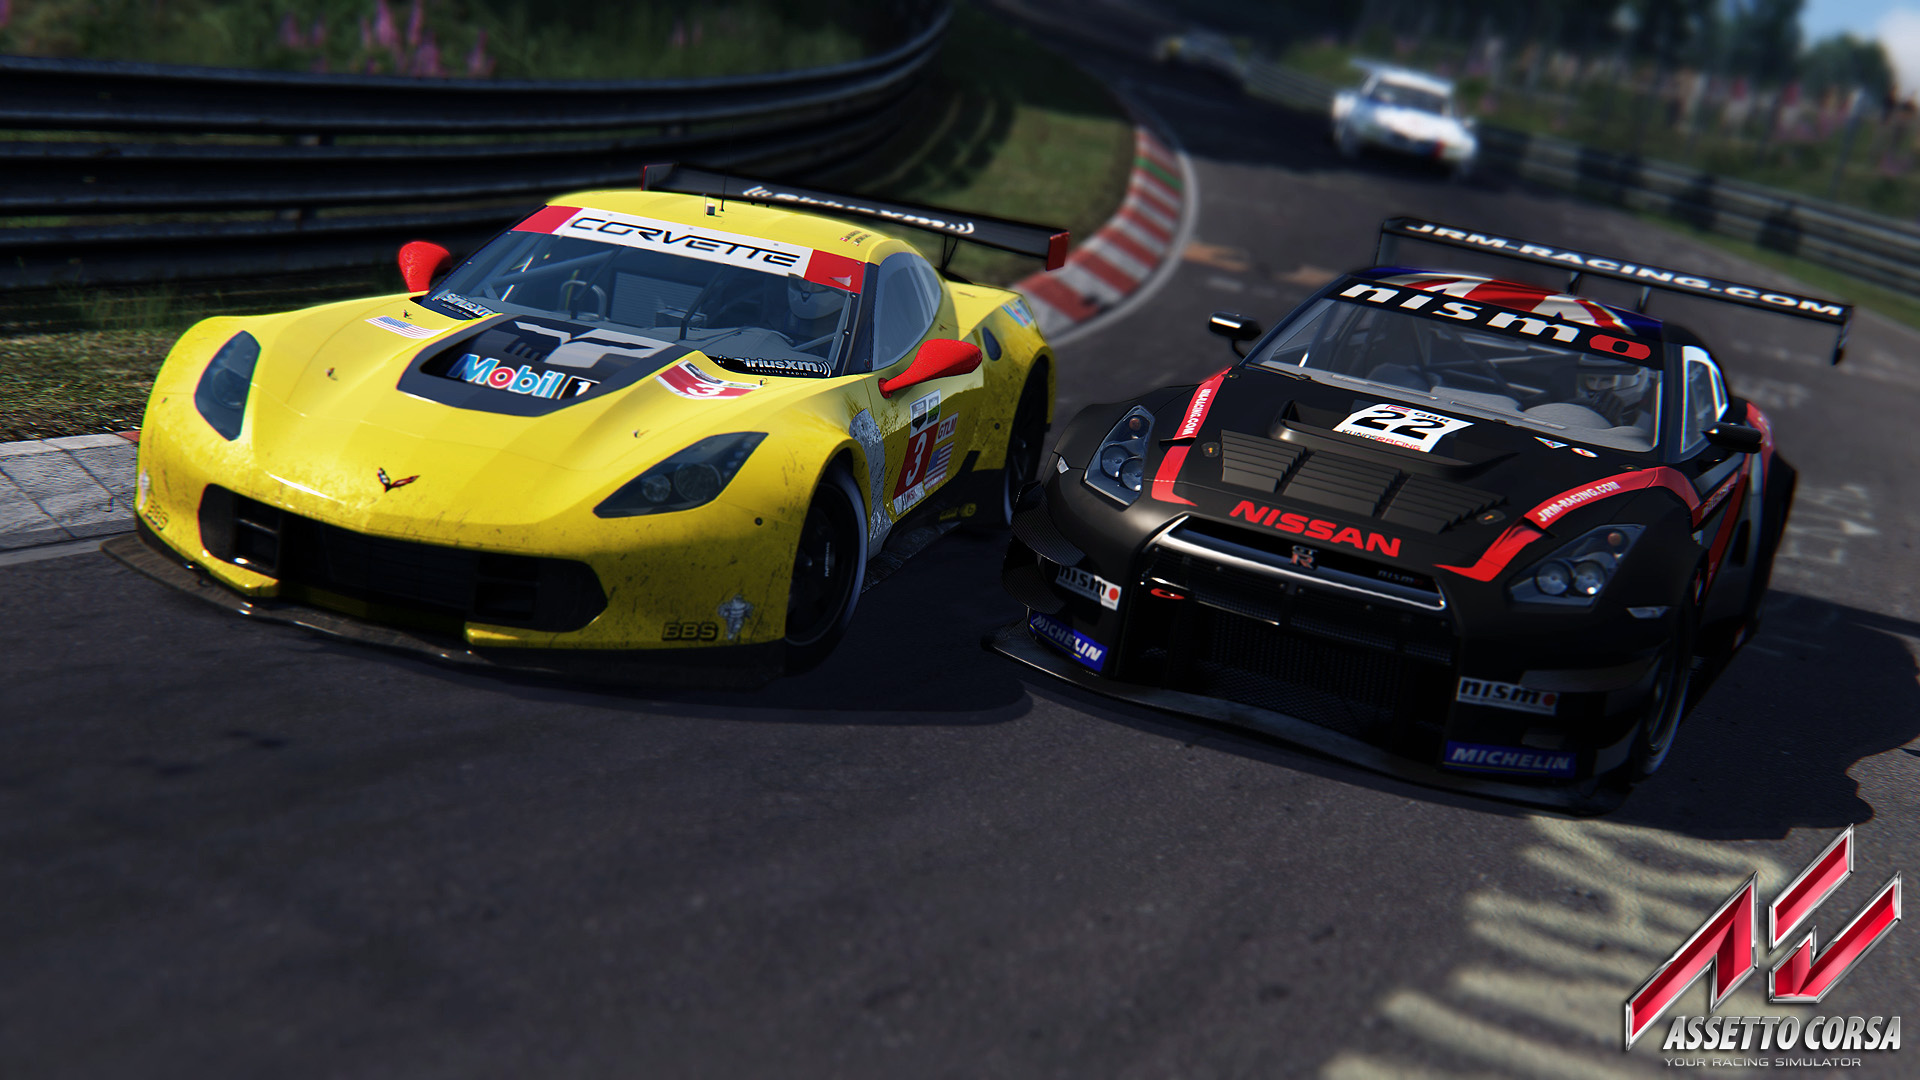 10 Best Car Racing Games For Pc In 2015 Gamers Decide